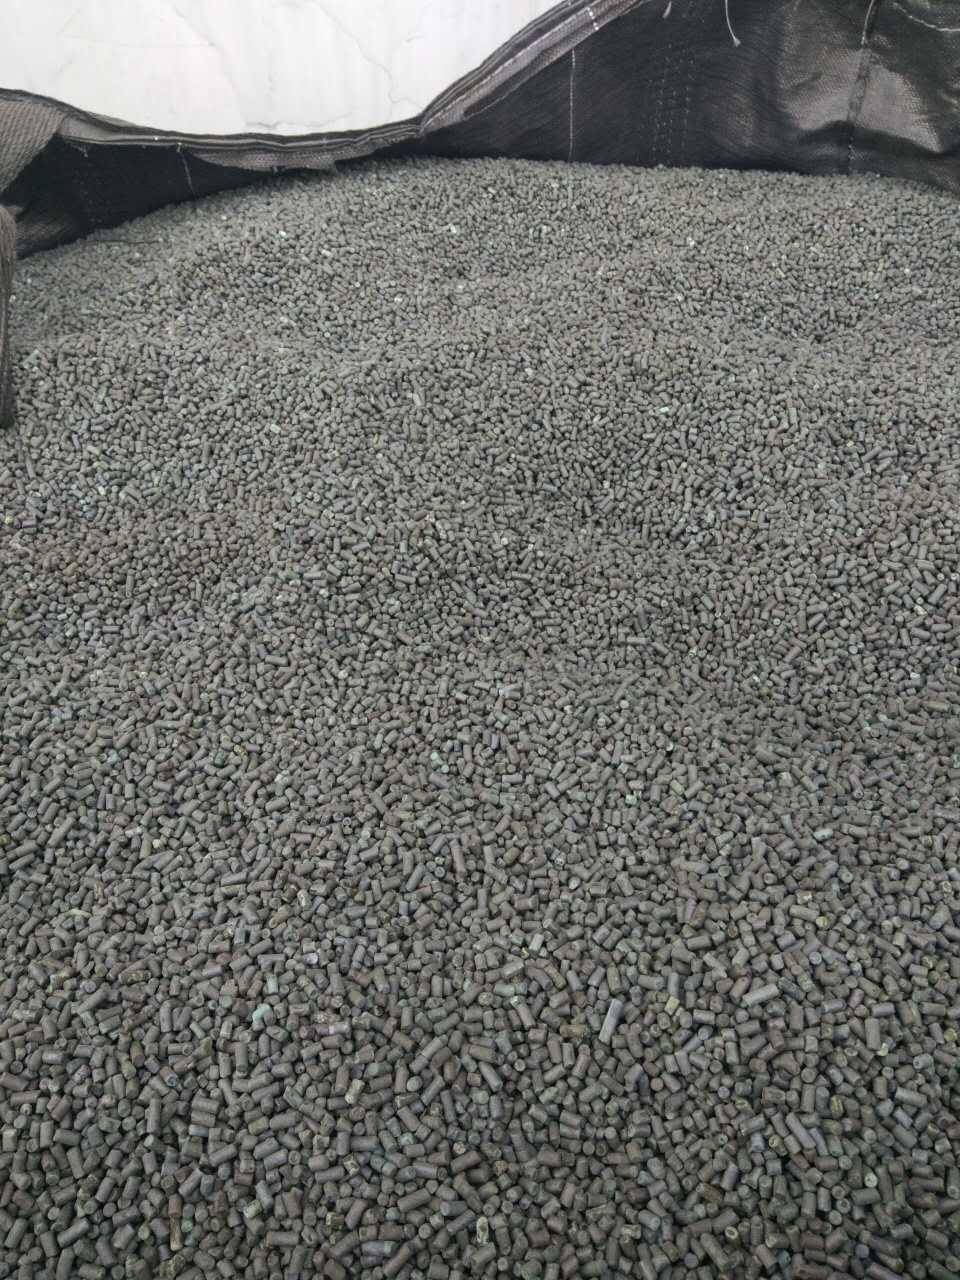 Sell granular activated carbon for water treatment